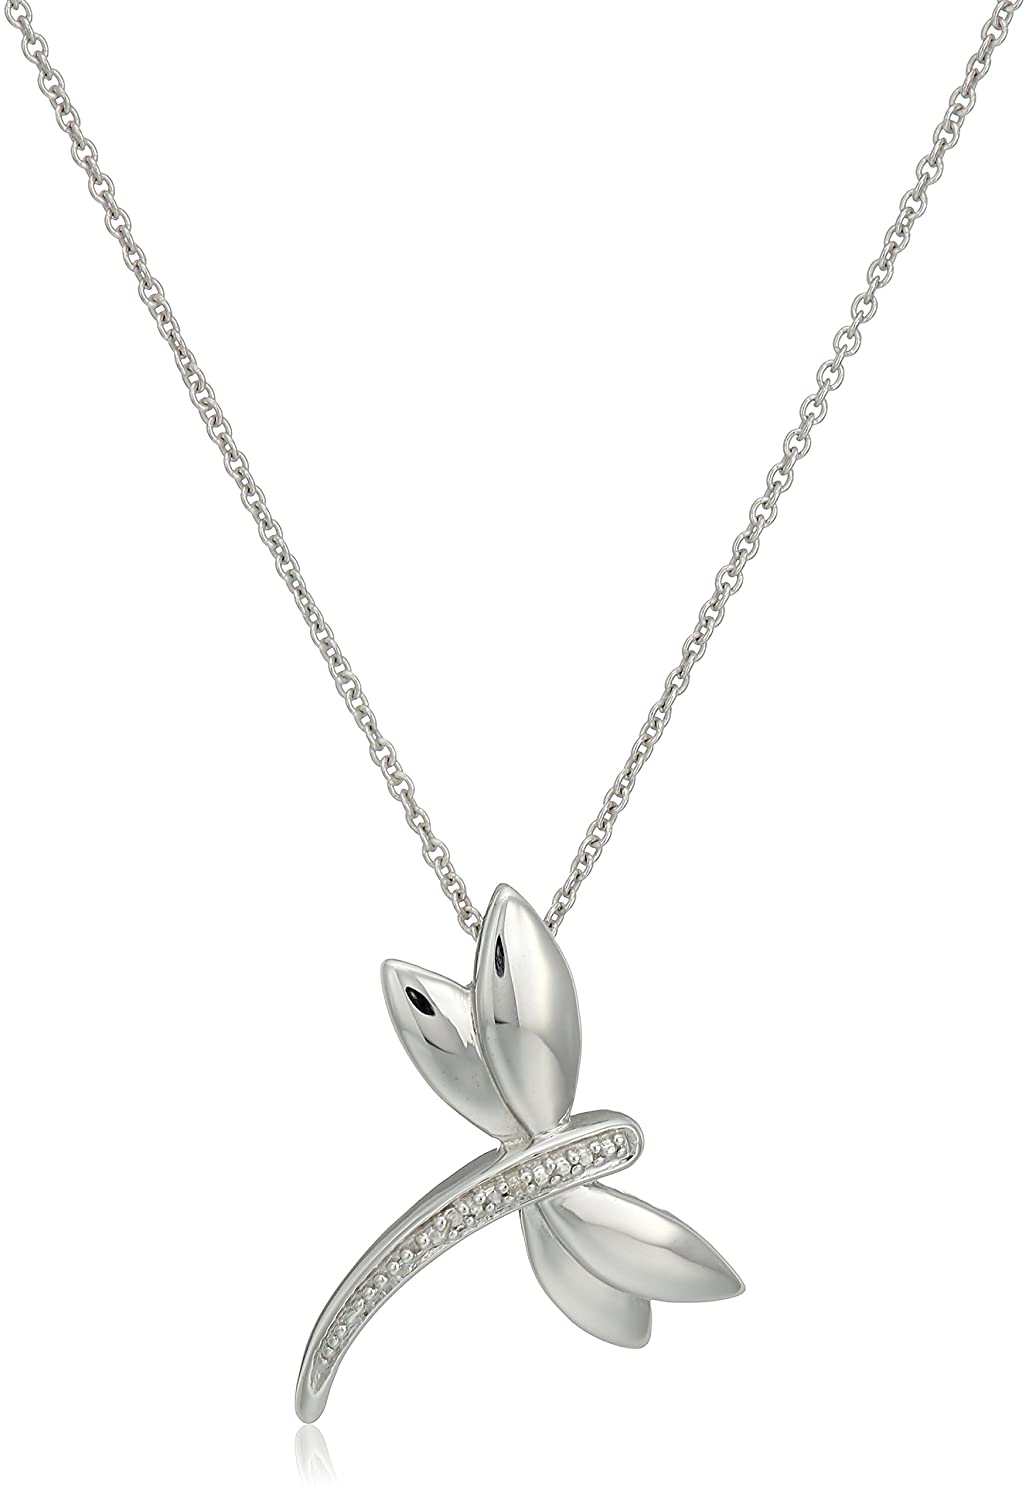 image pendants women necklaces jewellery monroe alex silver necklace pendant dragonfly